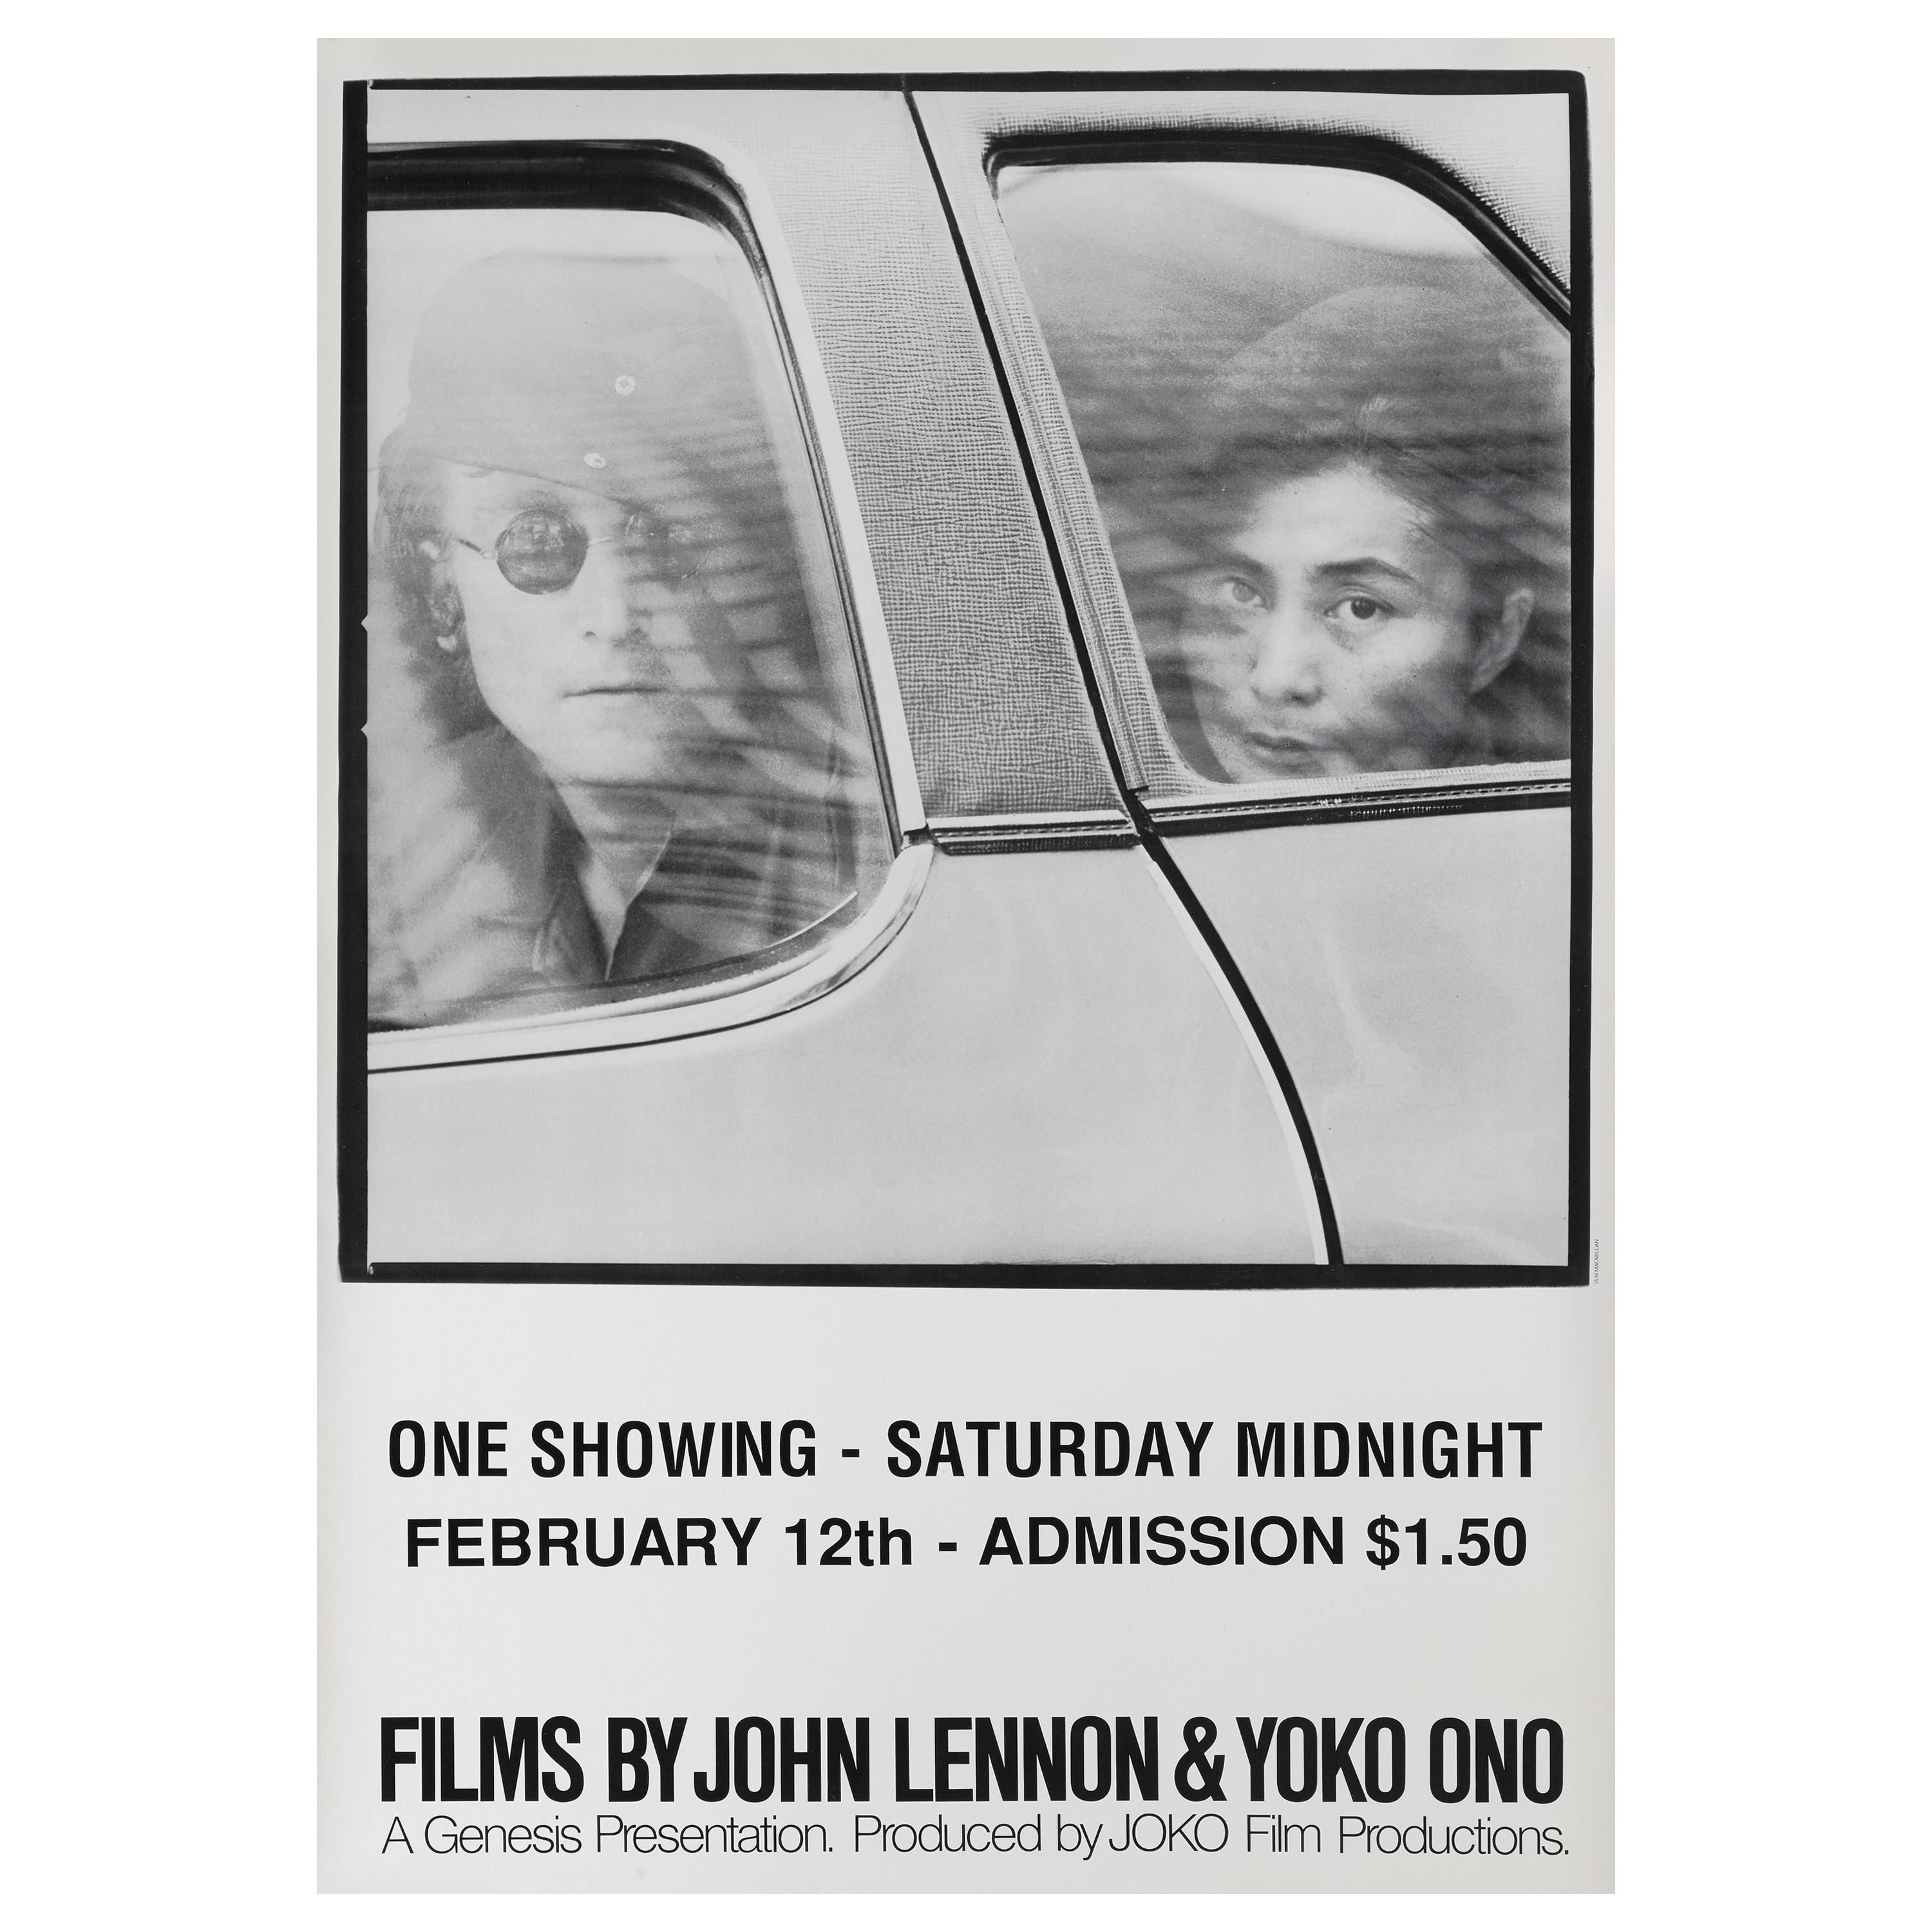 Films By John Lennon And Yoko Ono Original Us Film Poster For Sale At 1stdibs